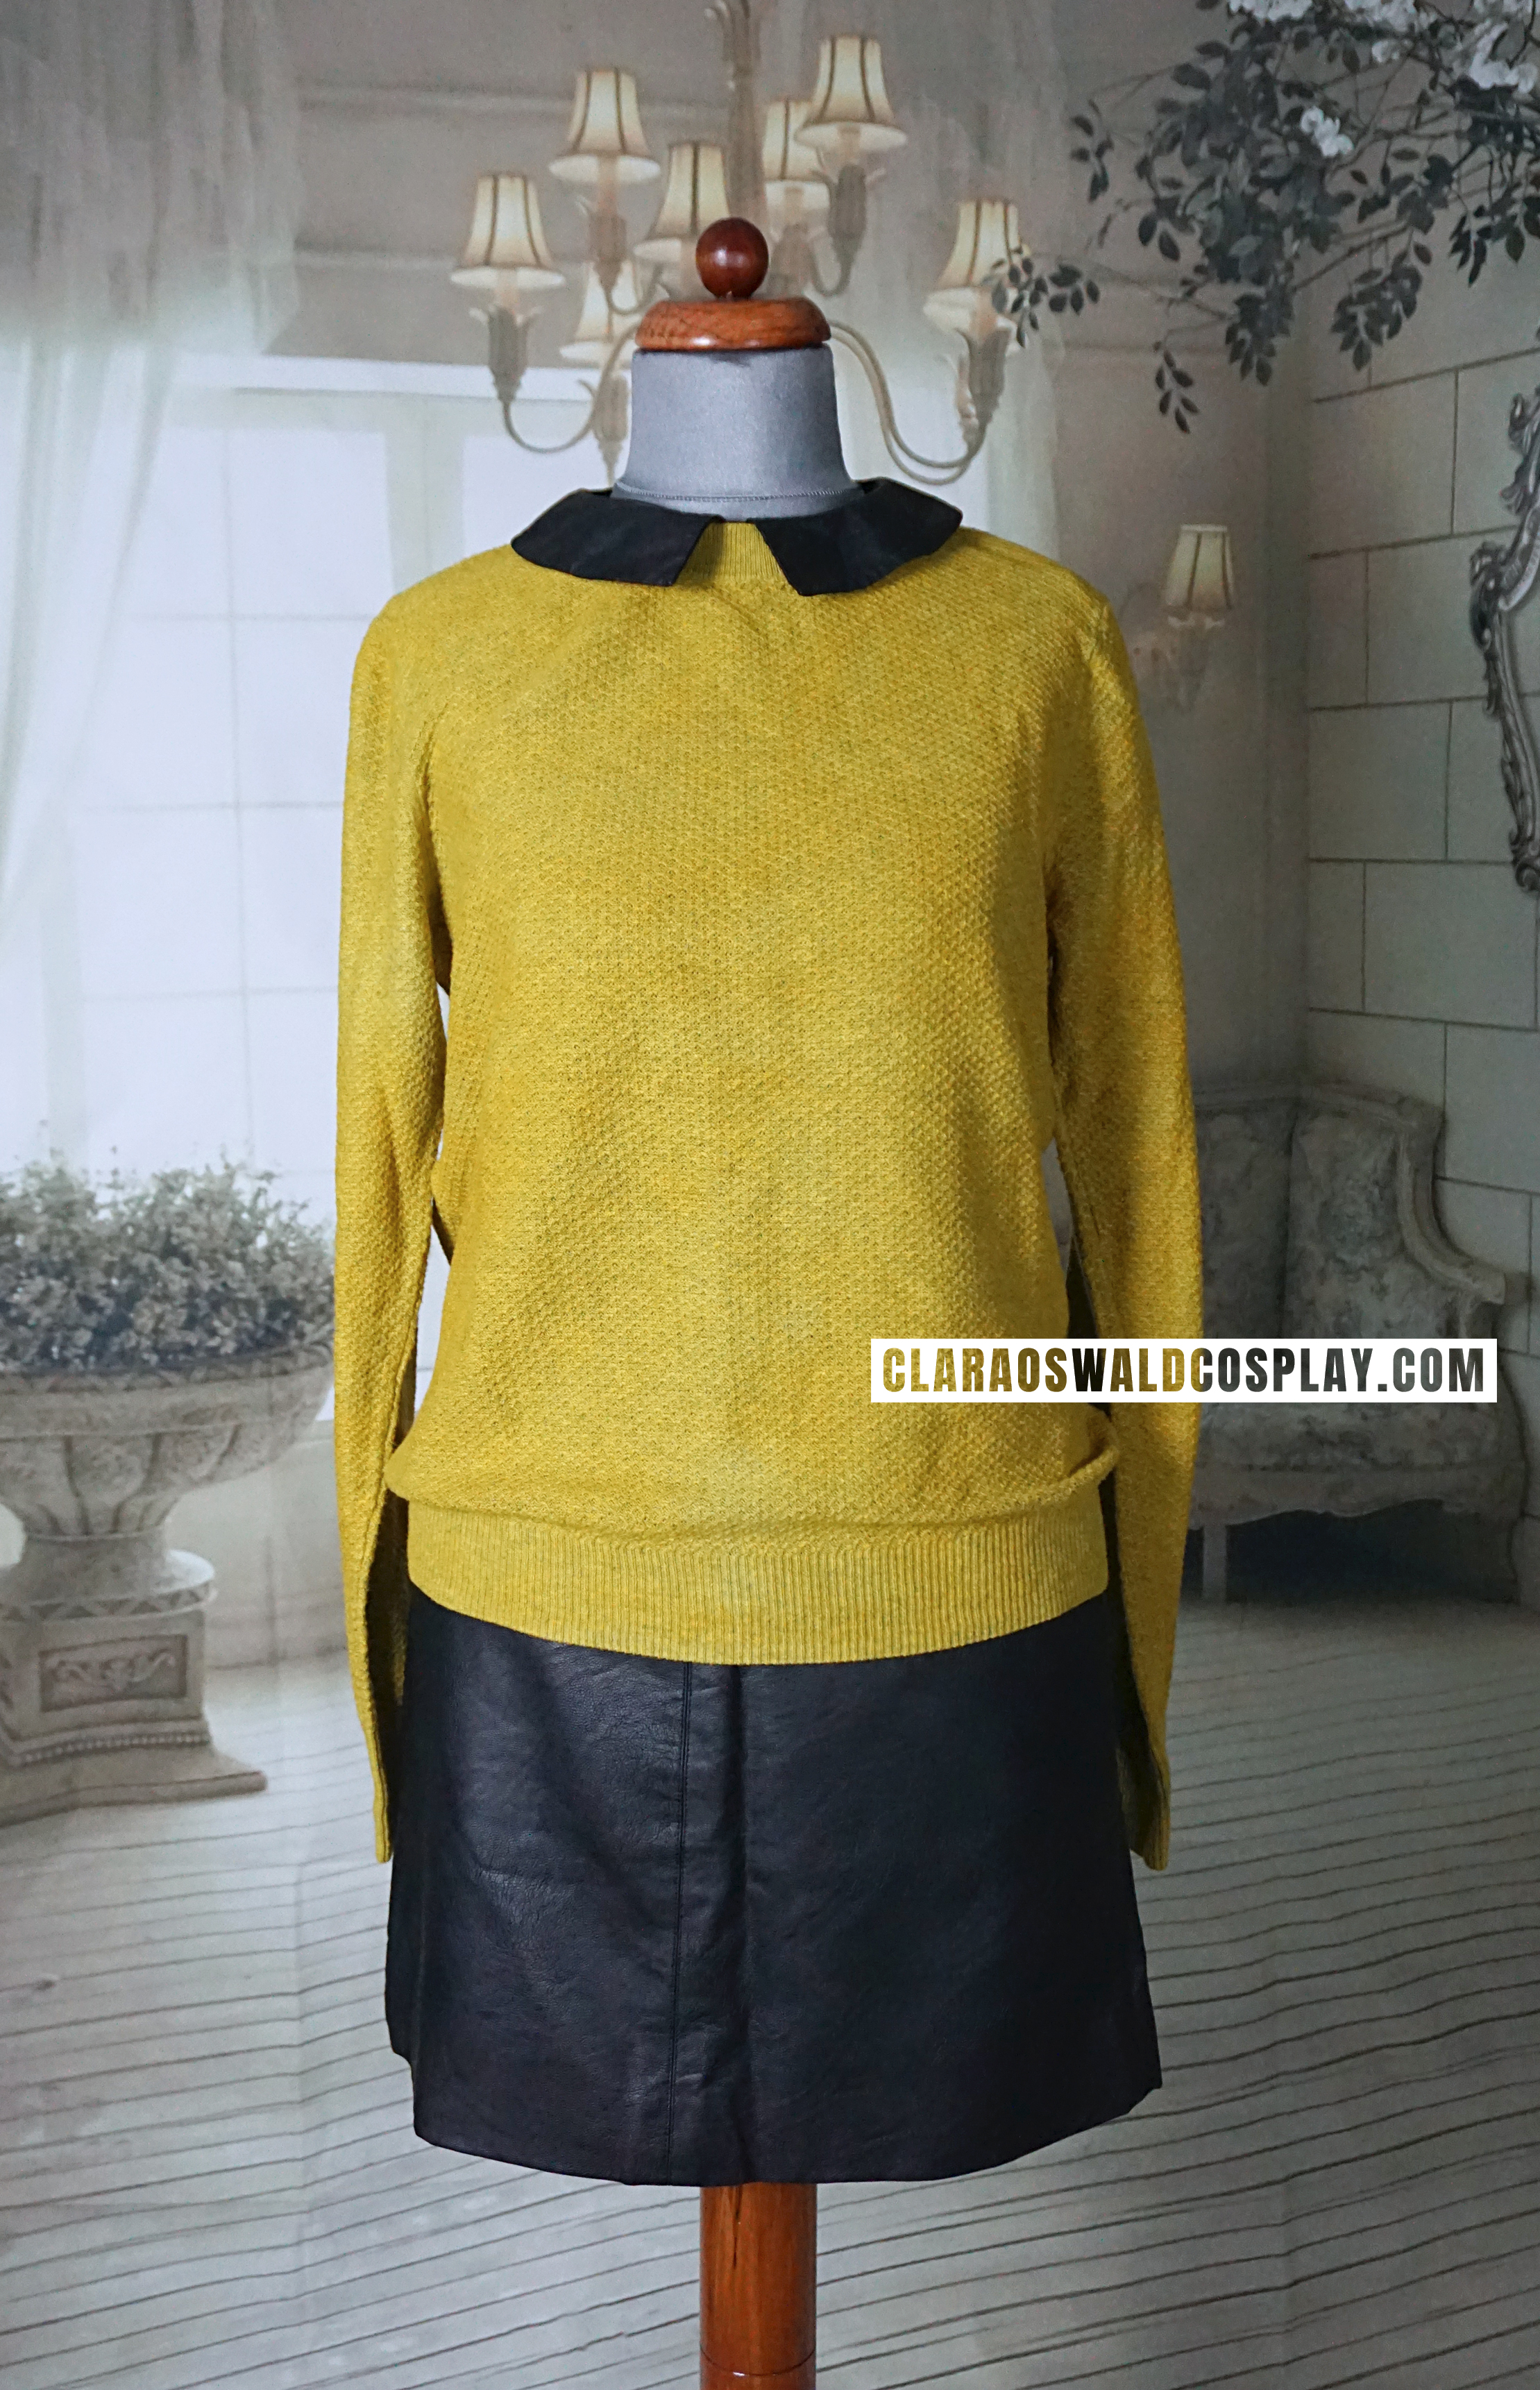 Clara Oswald's second Time of the Doctor outfit featuring the Topshop A-Line Leather Skirt (alt) and Oasis Yellow Faux Leather Collar Jumper